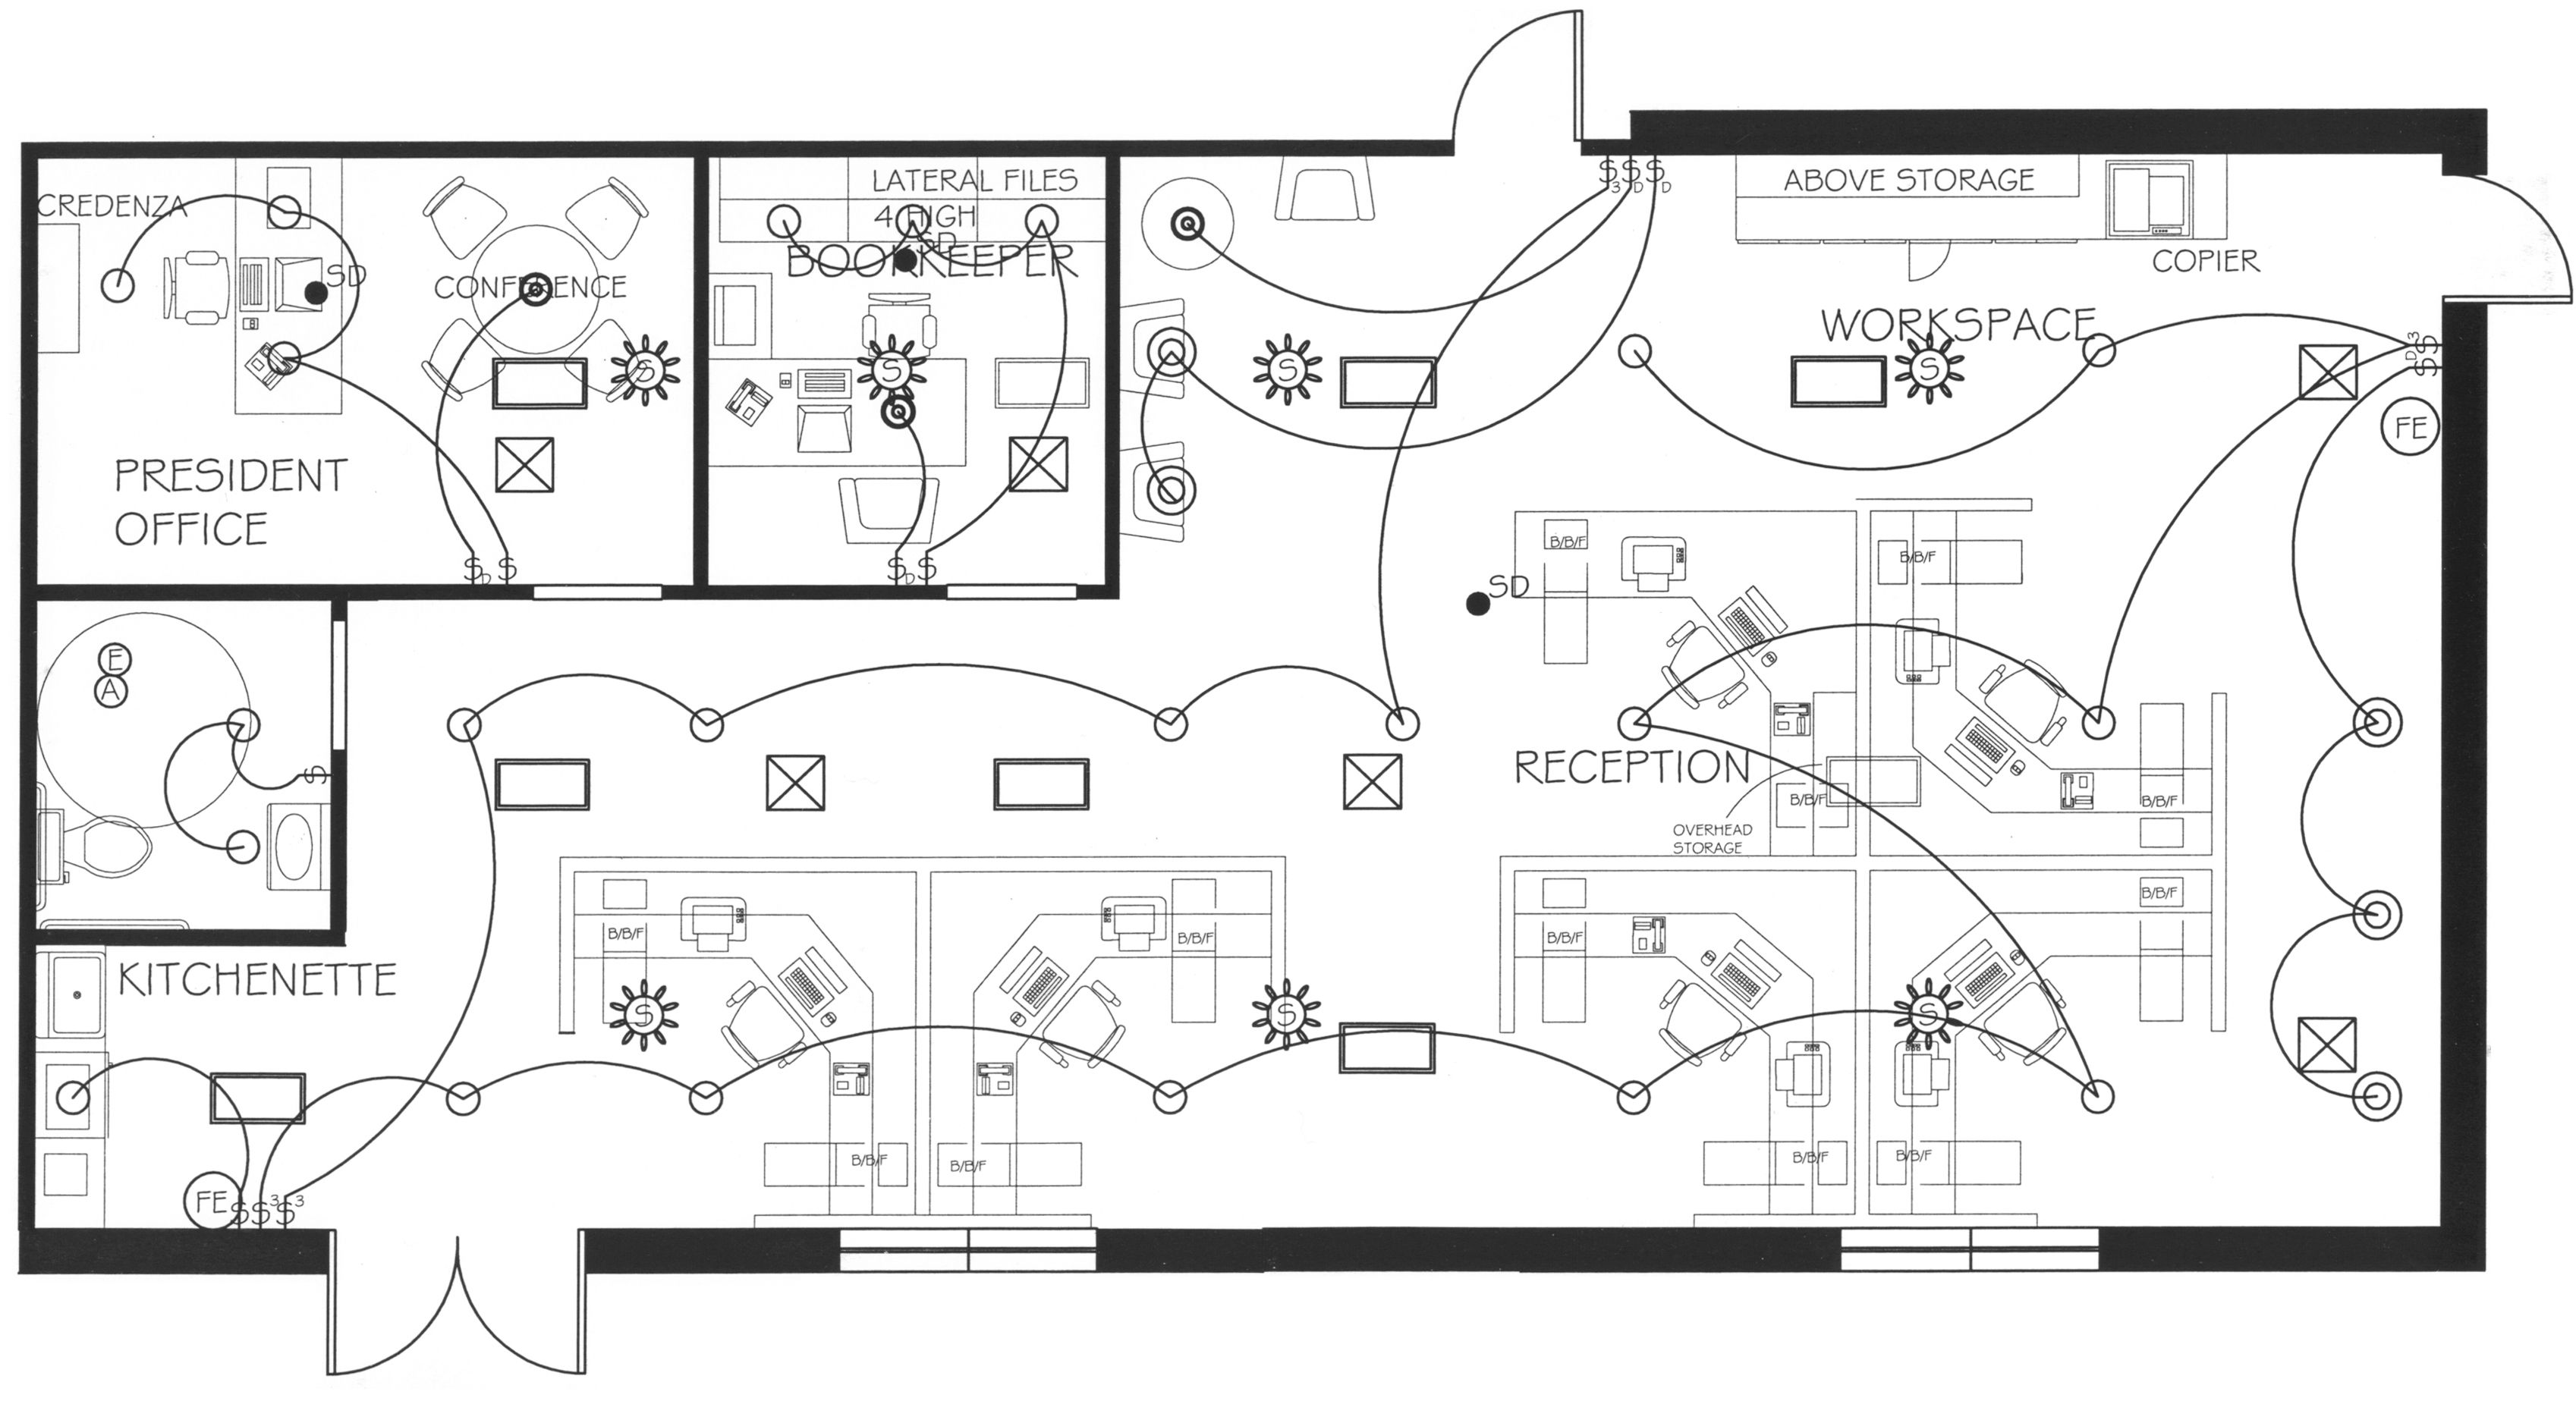 small resolution of office layout floor plan lauren dugger s portfolio